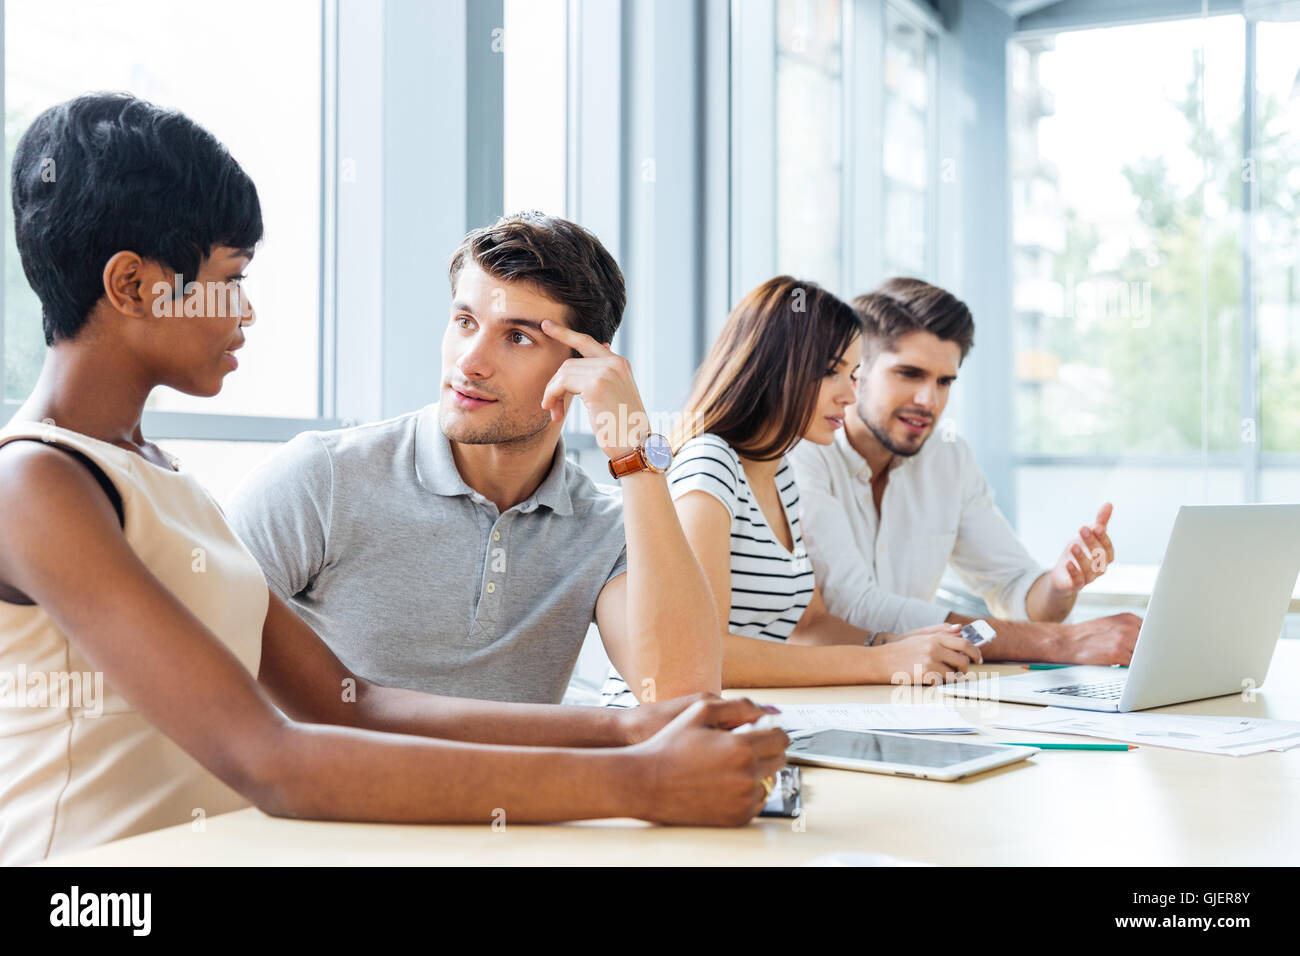 Group of young business people sitting and talking in office - Stock Image